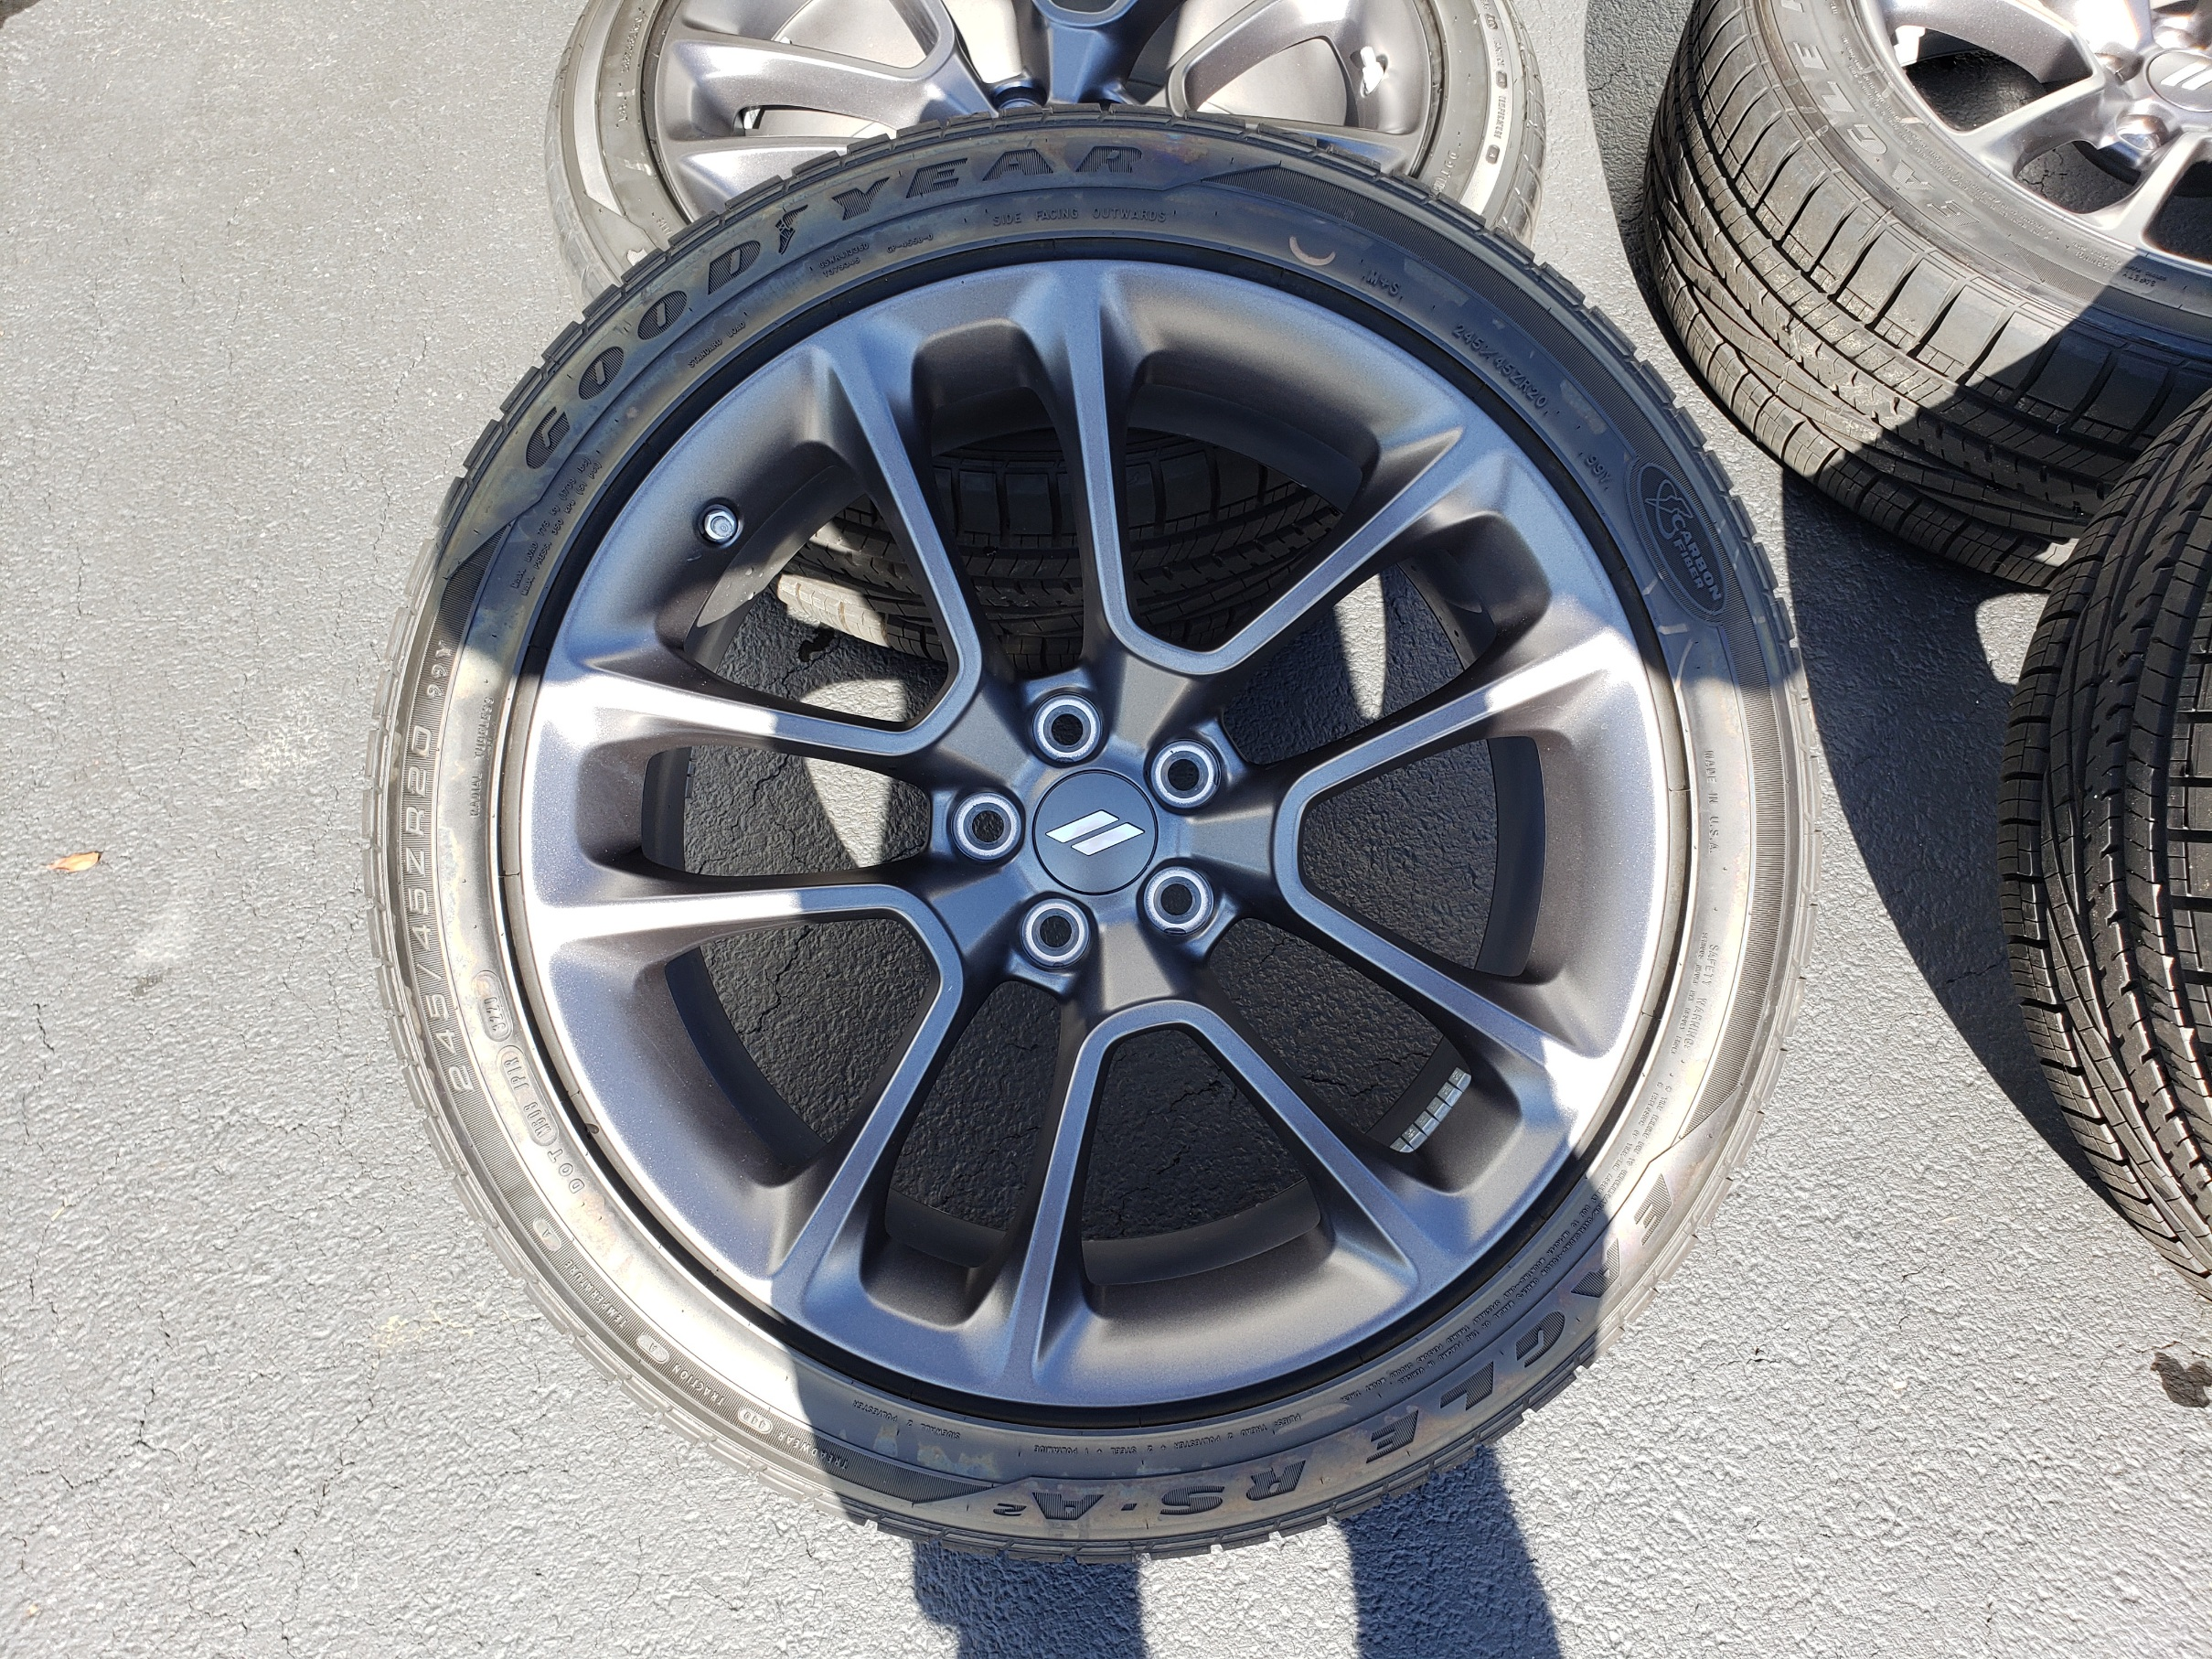 Like new 2020 oe scatpack wheels and tires!